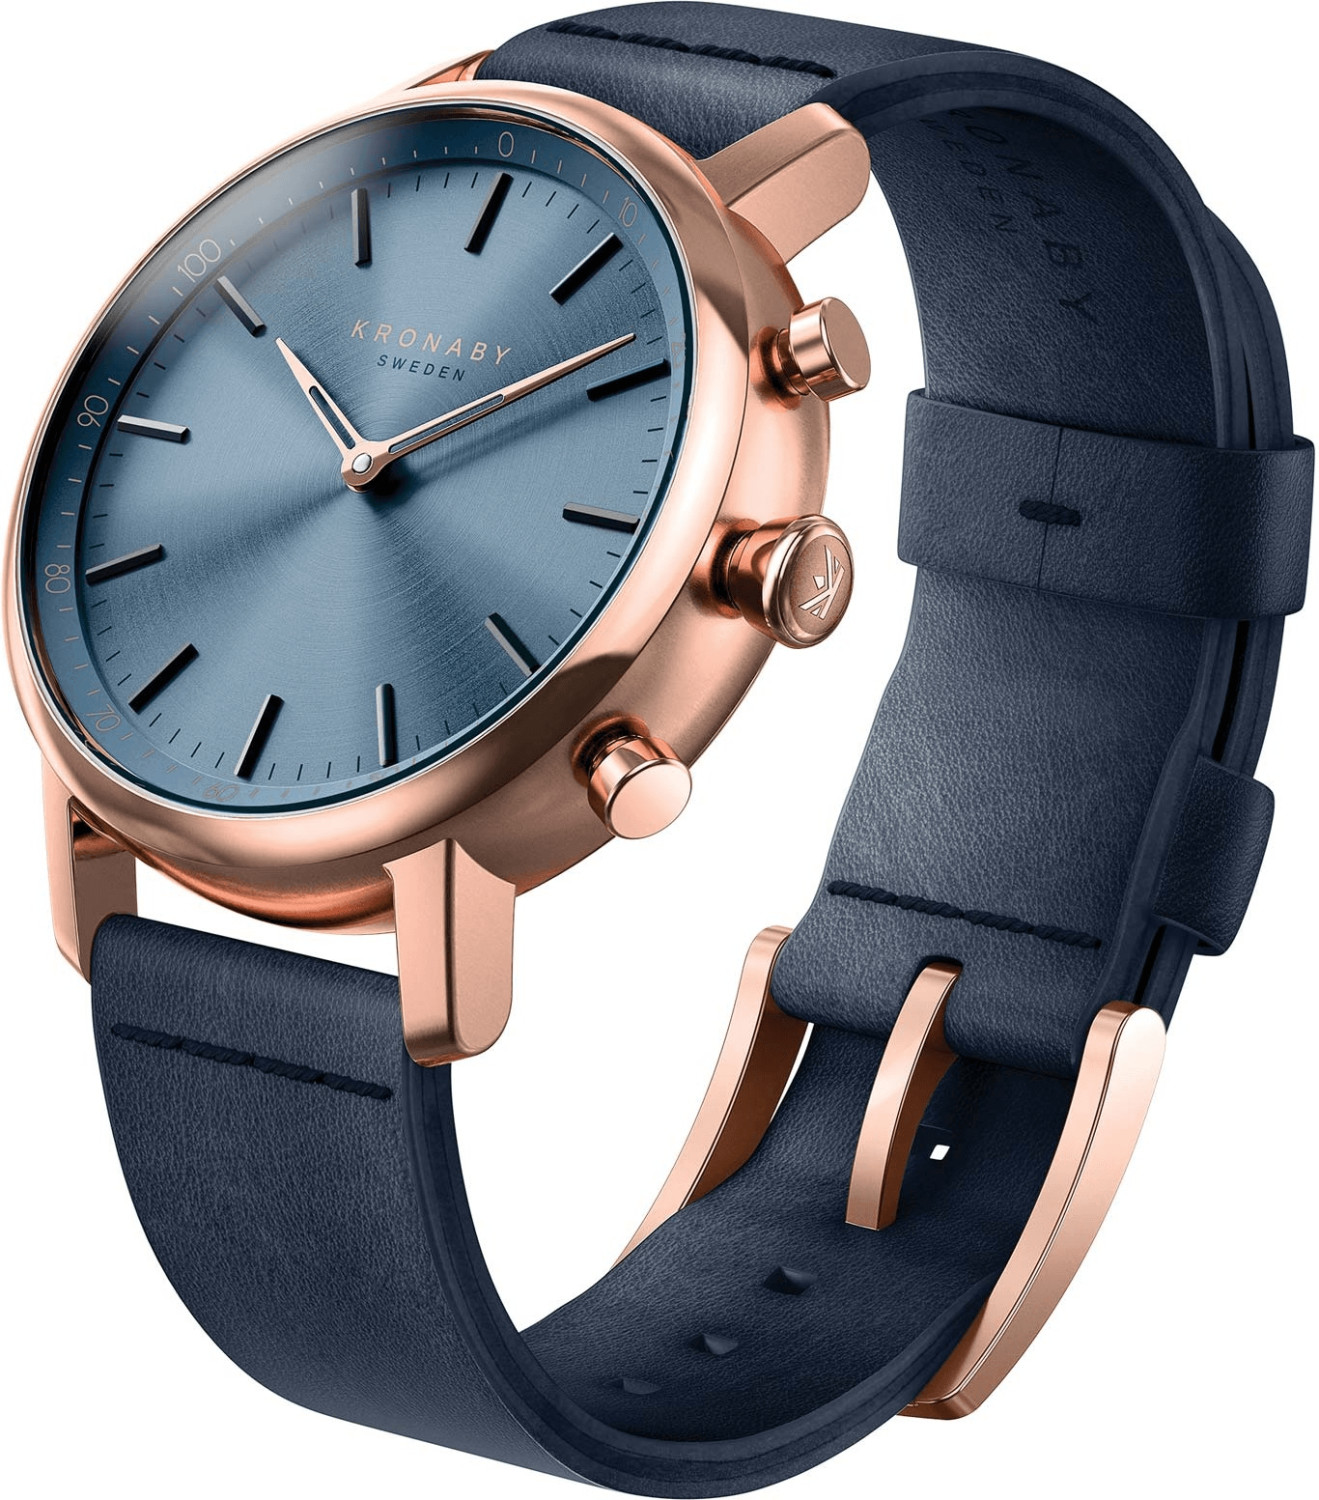 Image of Kronaby Carat blue - blue Leather Strap